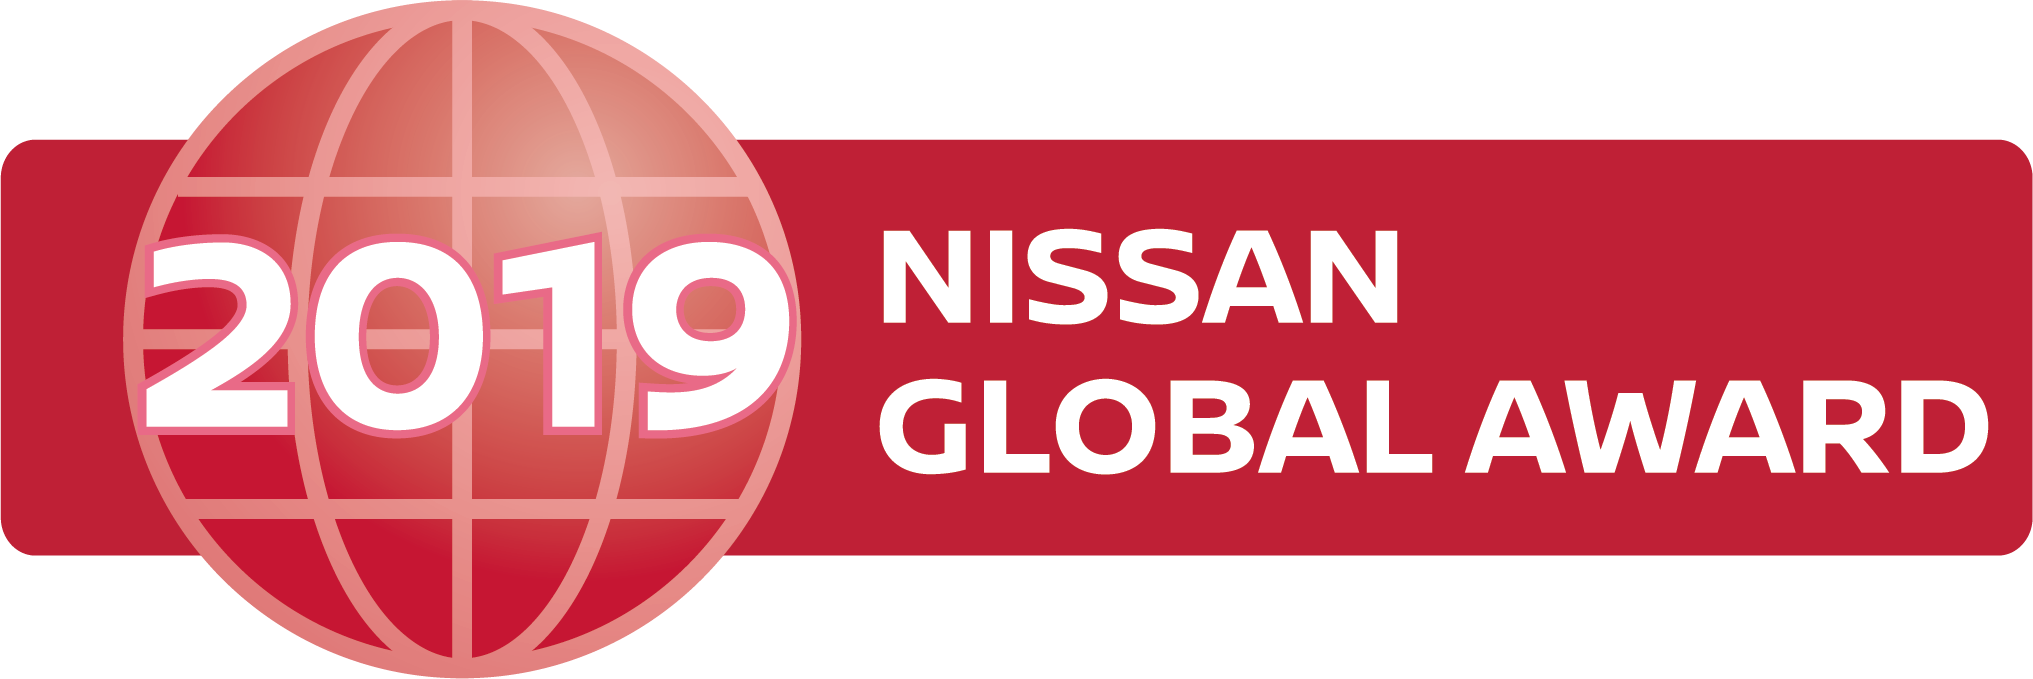 2019 Nissan Global Award